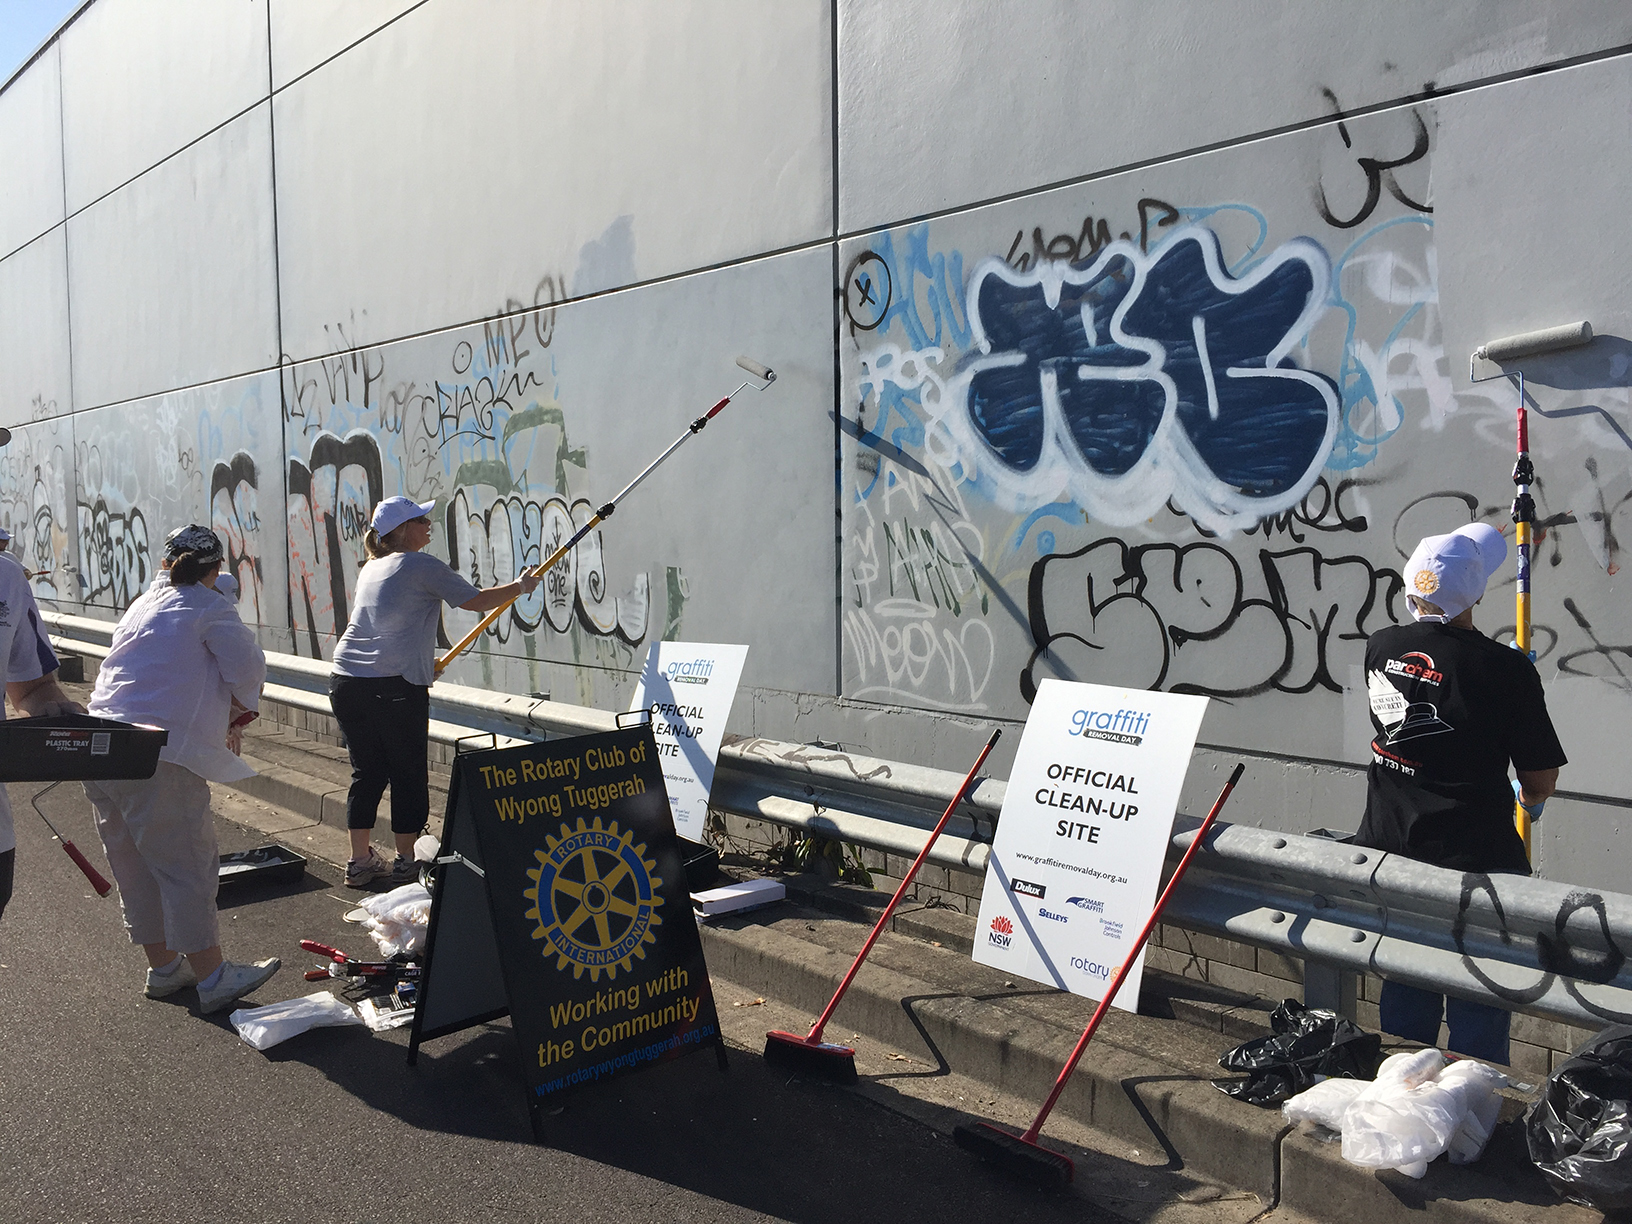 Graffiti removal day encouraged action to defeat graffiti vandalism